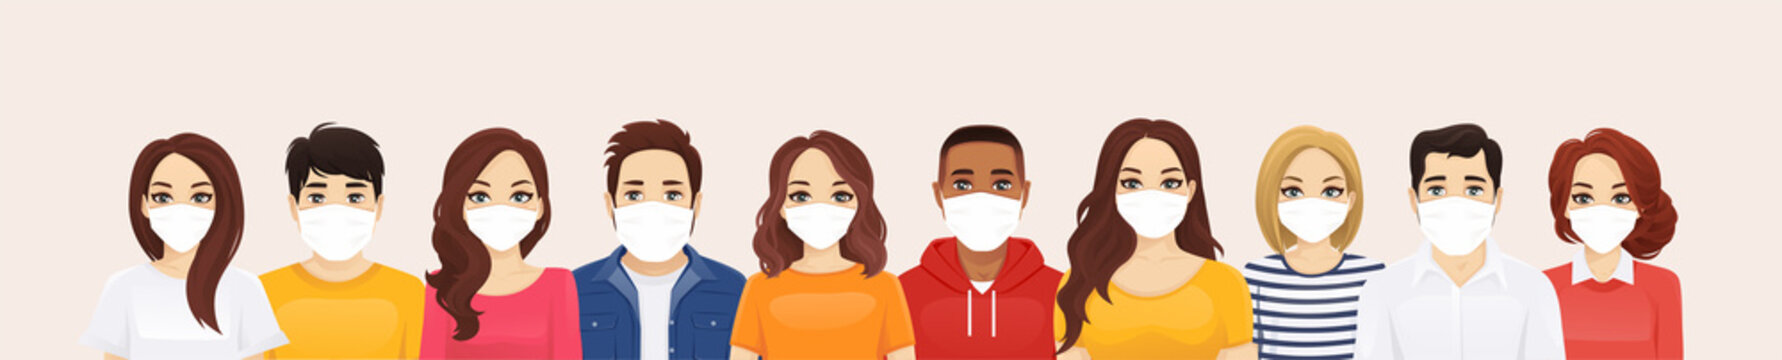 Group of people wearing protective medical mask as protection against transmissible infectious diseases, flu and air pollution vector illustration